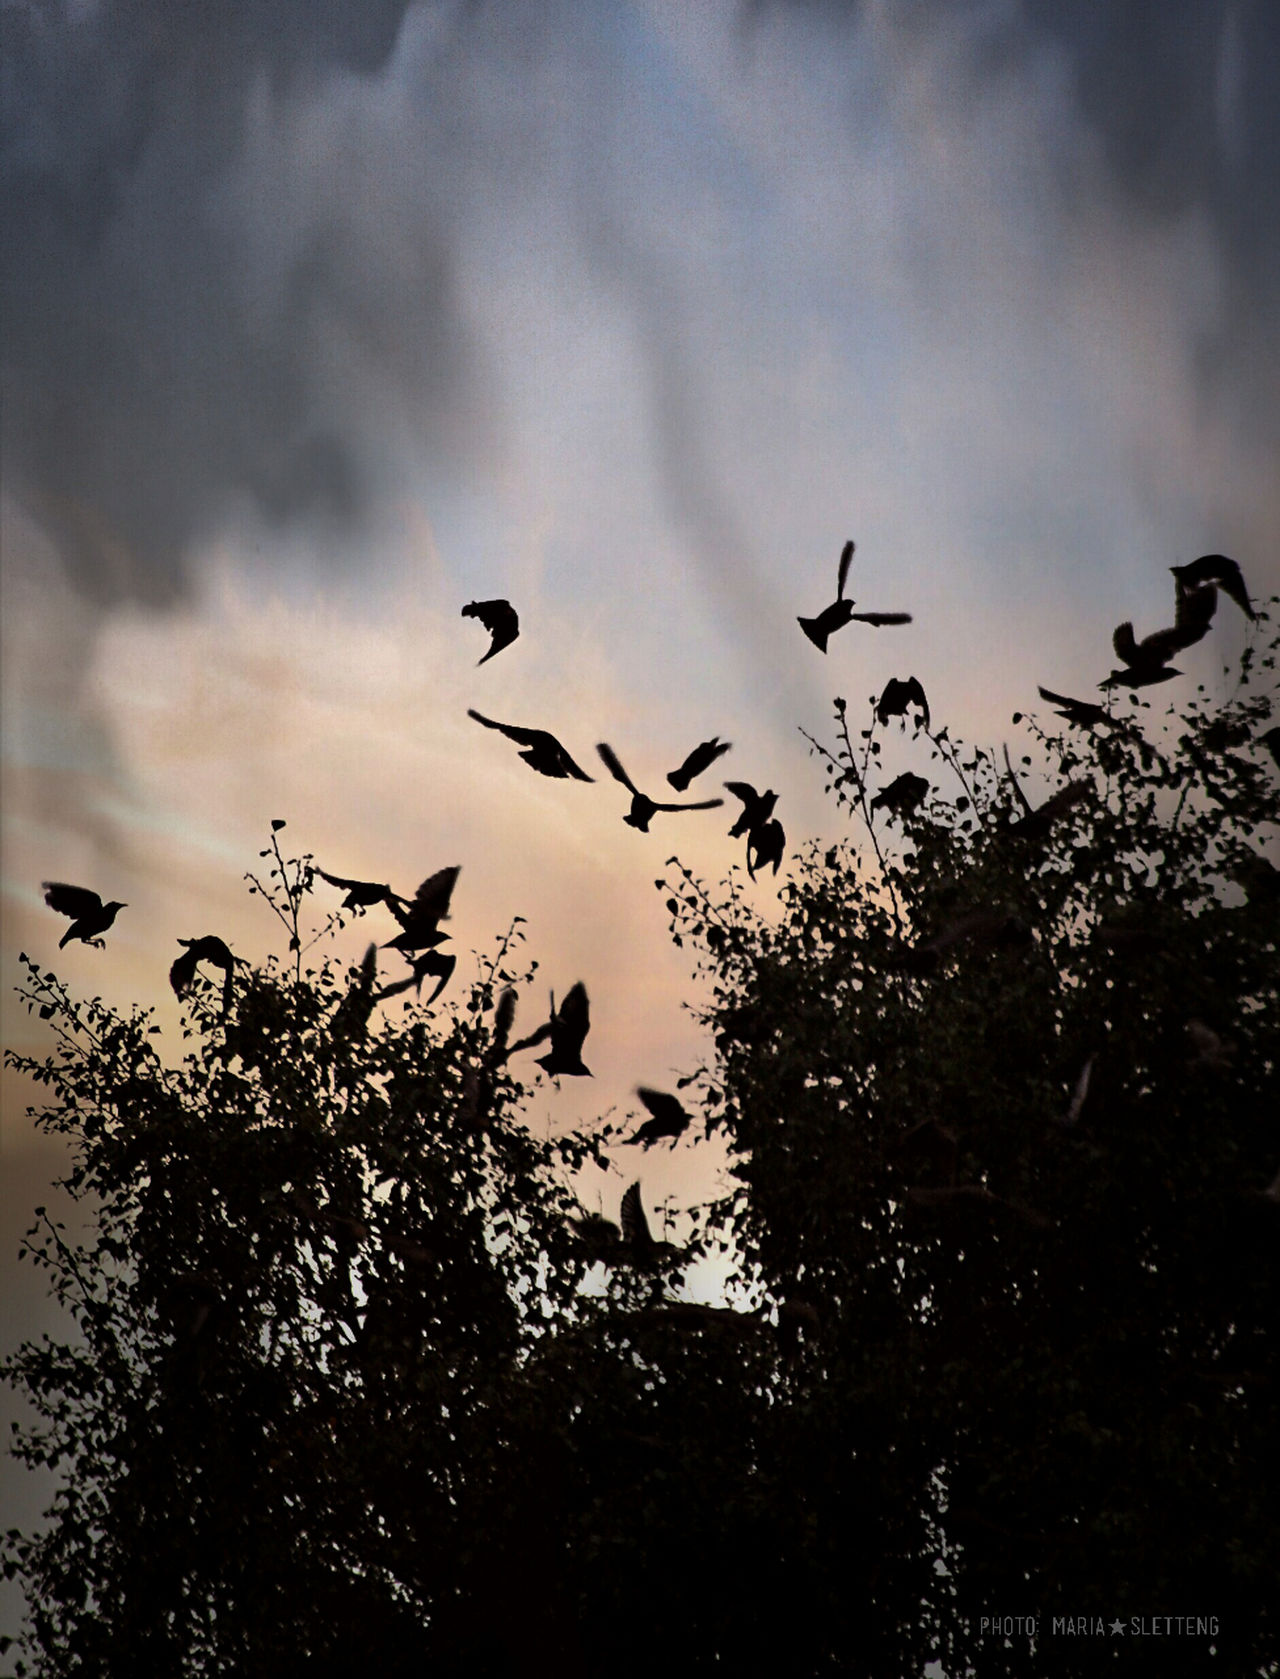 Birds Bird Birds Flying Tree With Birds Tree Silhouette Birds Silhouette Fåglar Fågel Siluett Träd Siluett Nature Photography Natur Sky